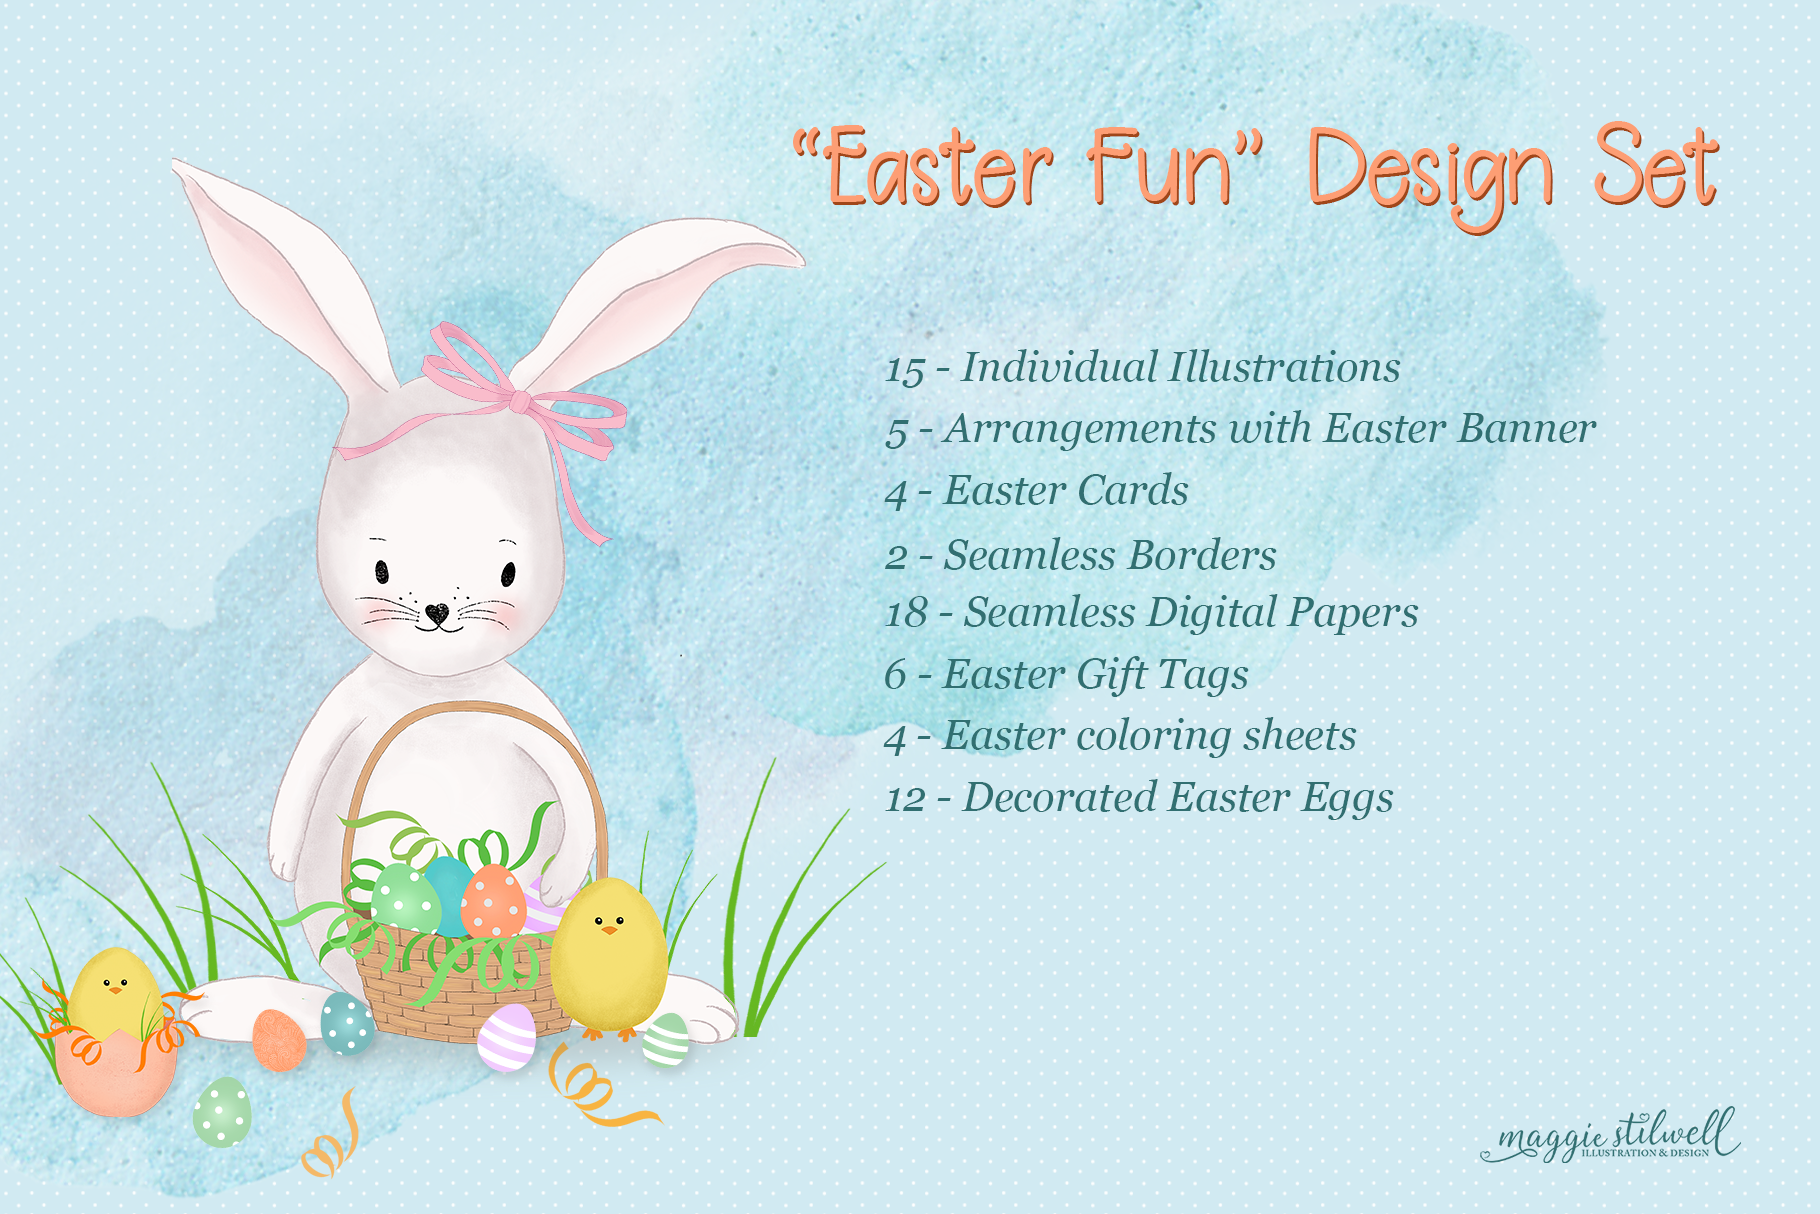 Easter Fun Design Set